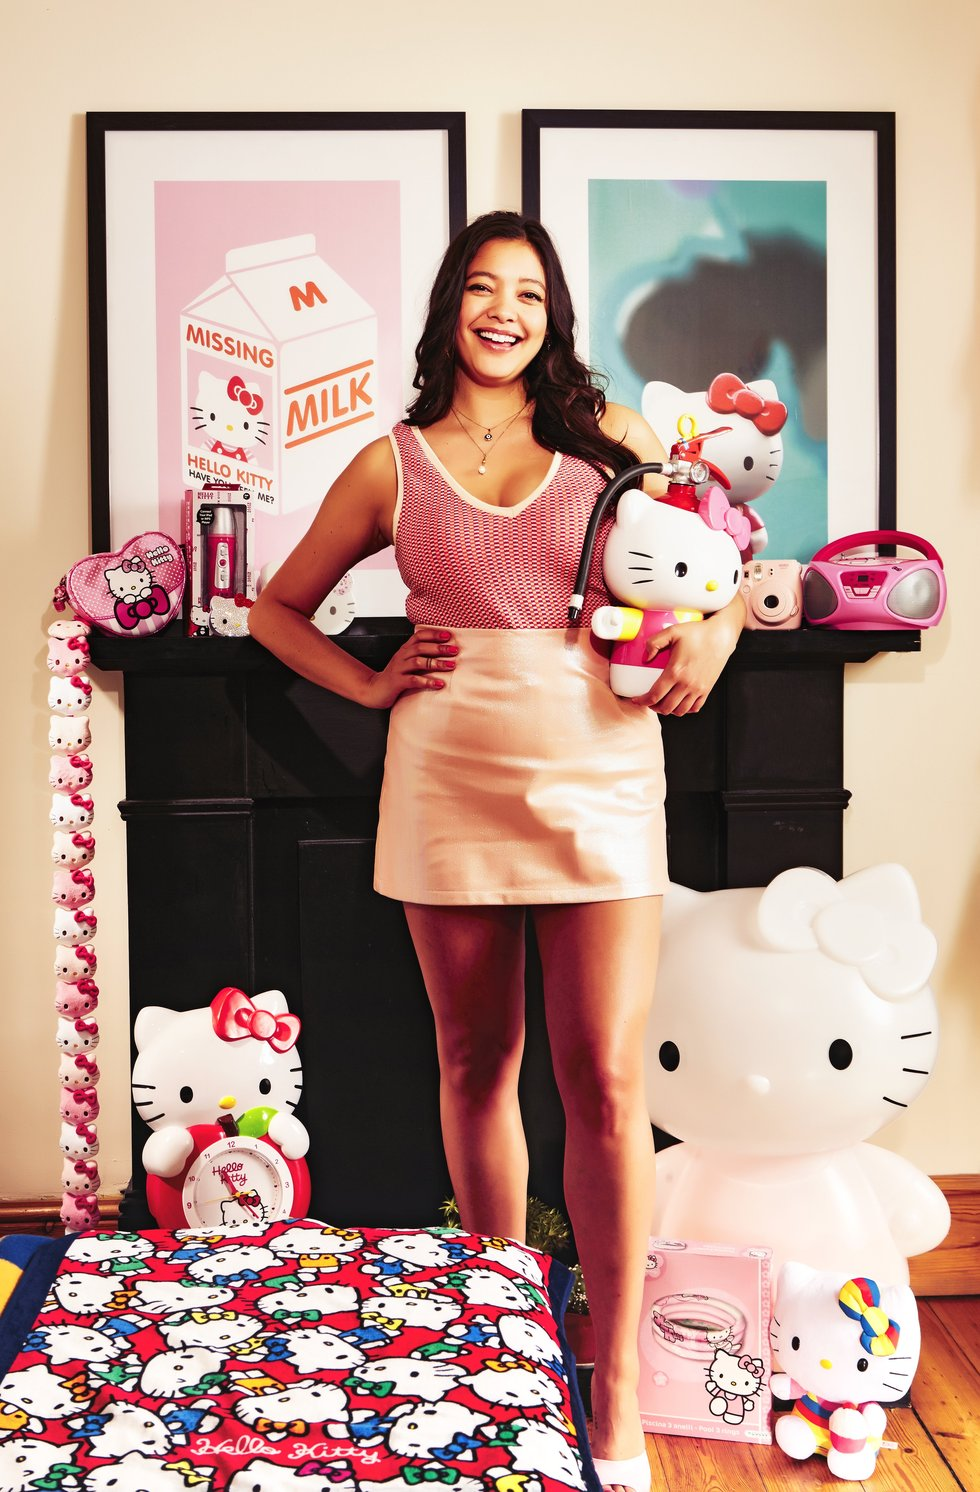 Atomic Kitty: meet the women obsessed by Hello Kitty